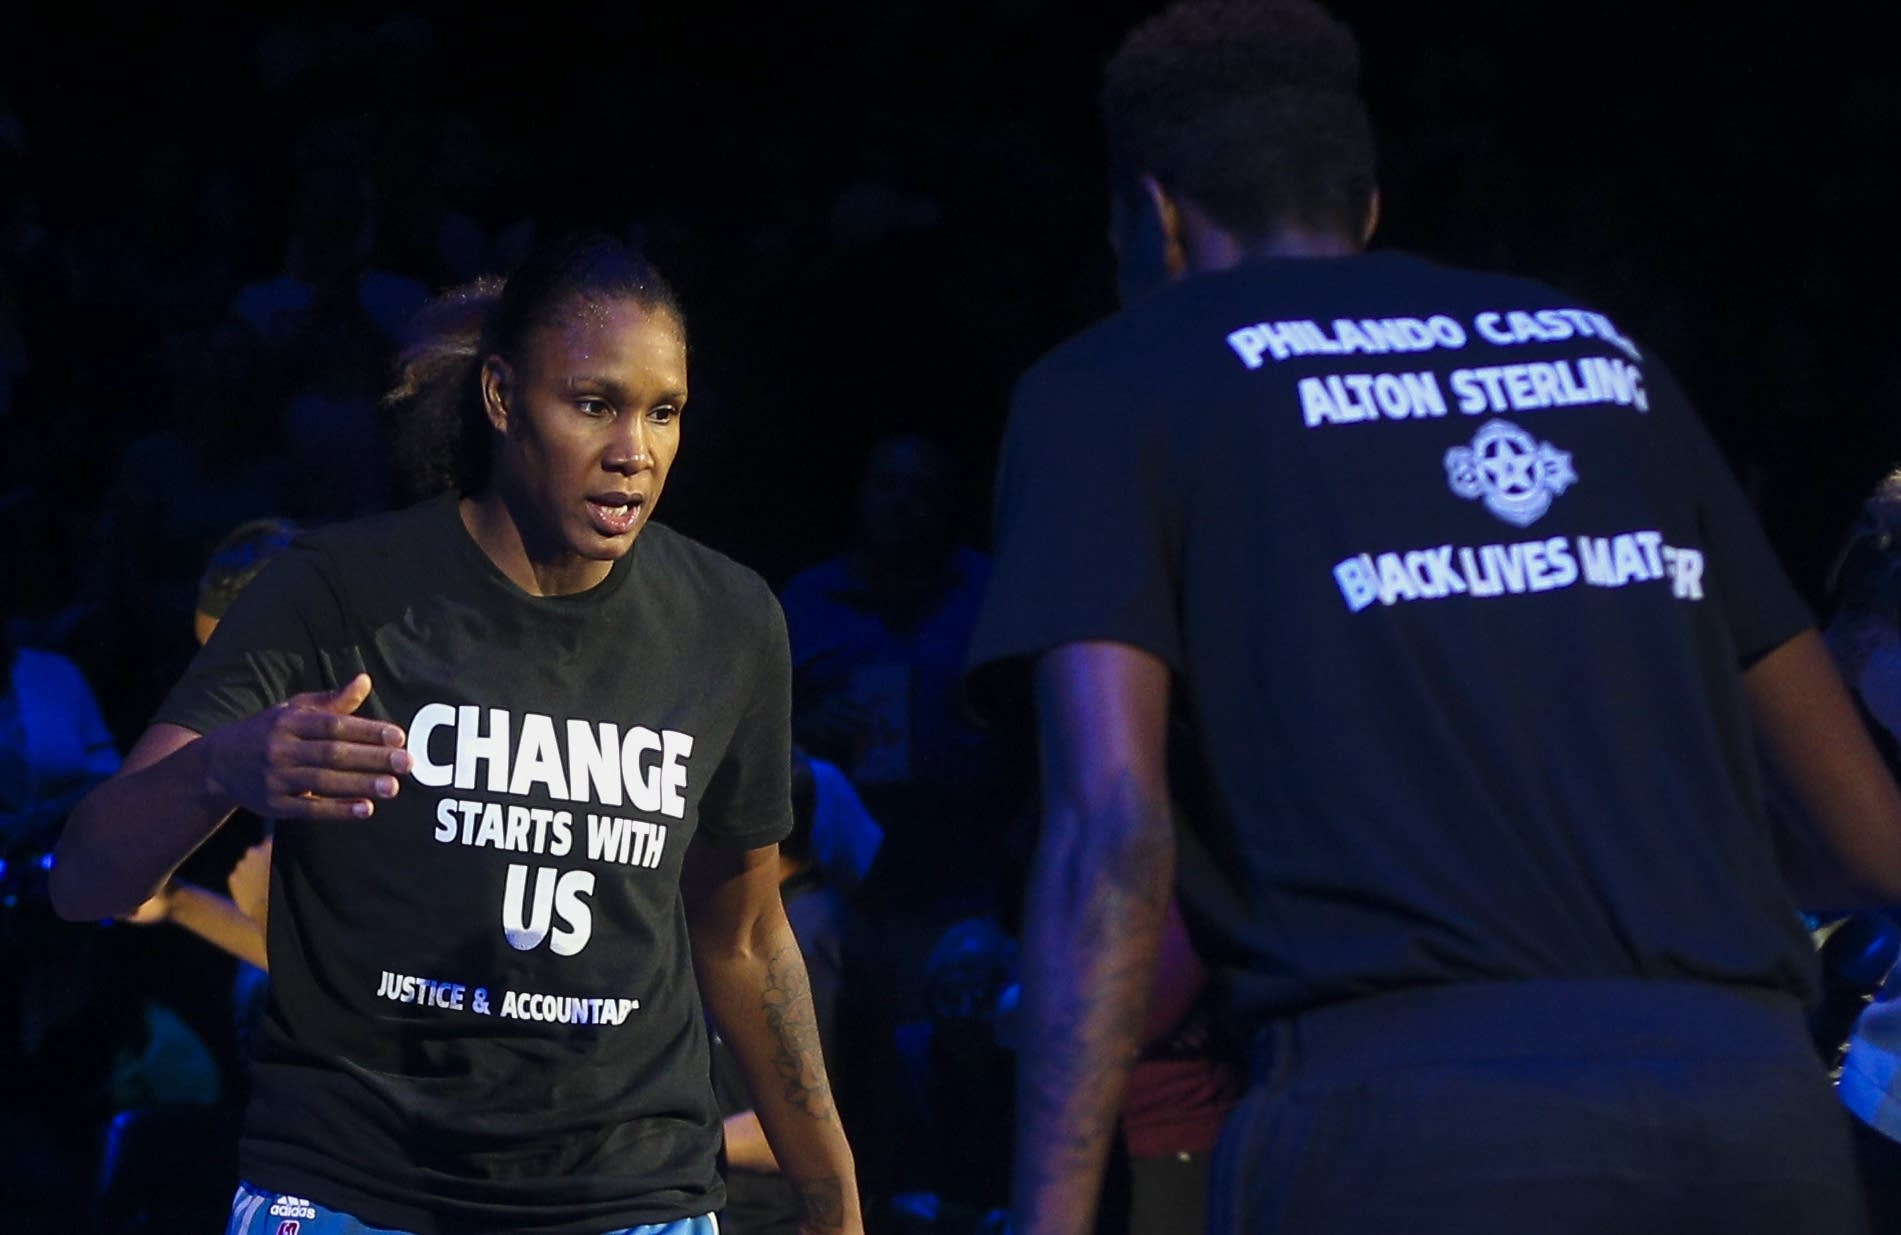 Officers walk out over Lynx shirts